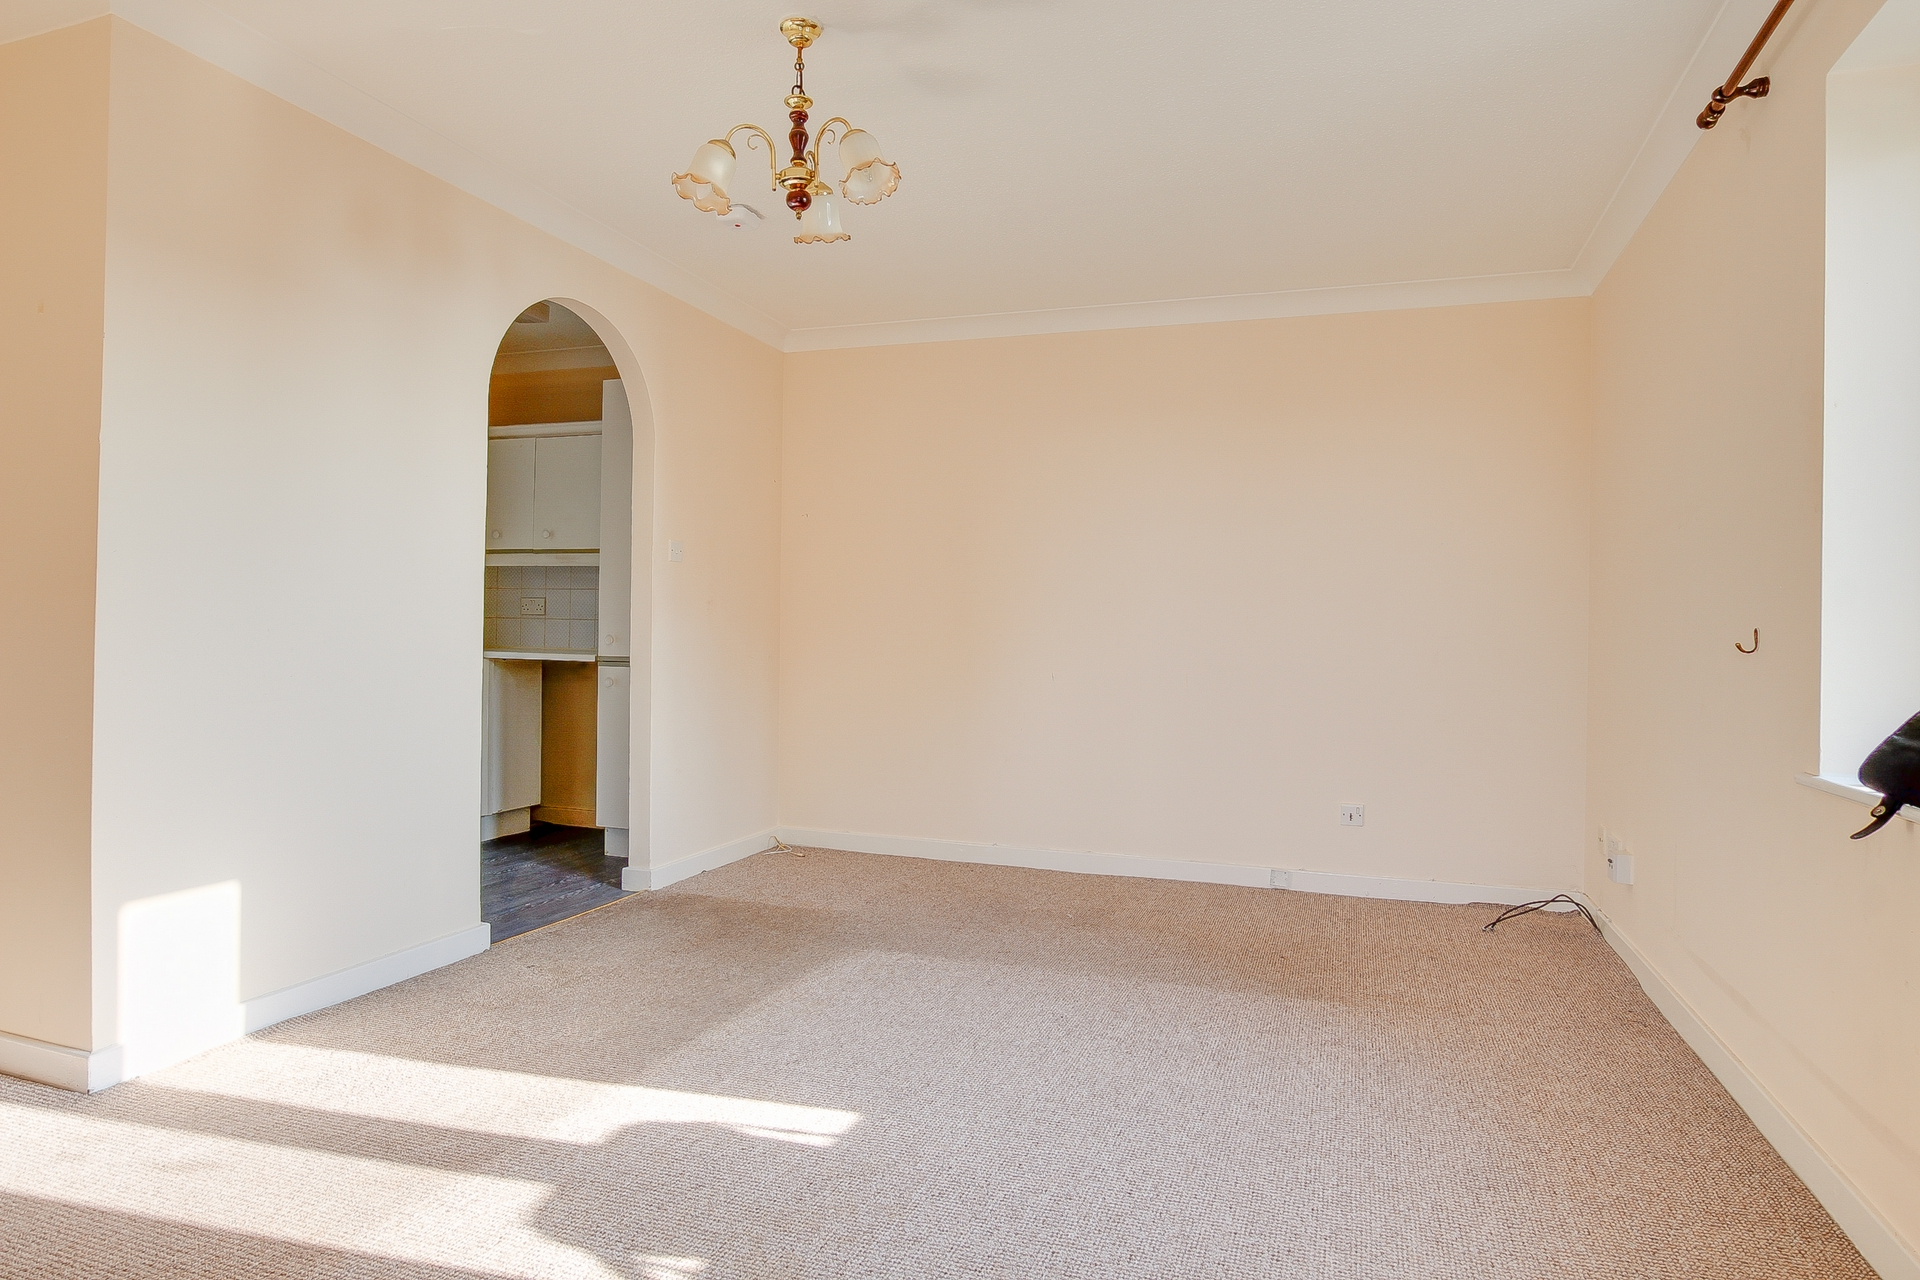 2 bed flat to rent in Victoria Road, Ramsgate, CT11 1